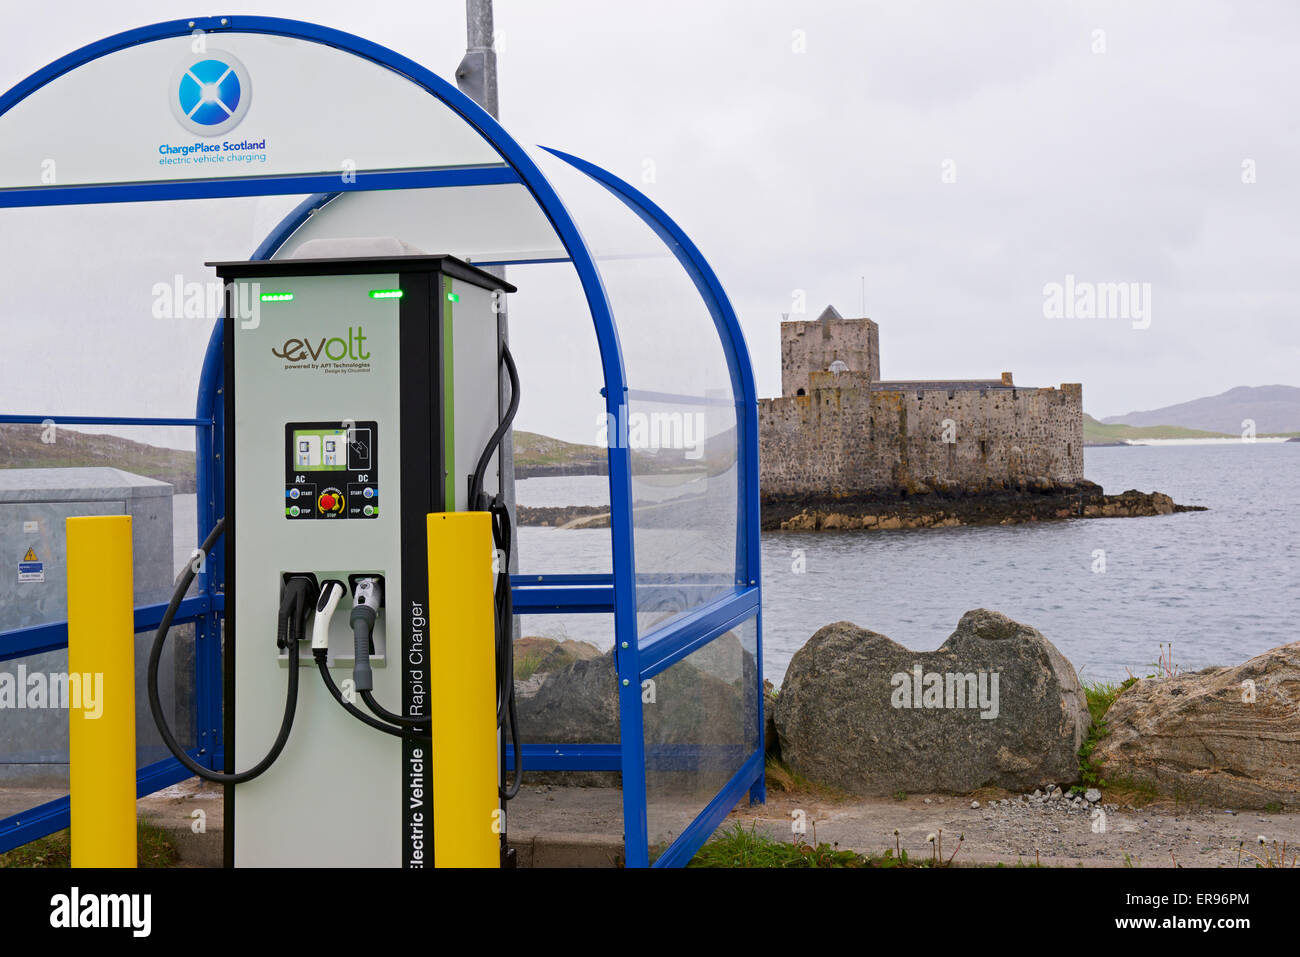 Charging point for electric vehicles at Castlebay, on the Isle of Barra, Outer Hebrides, Scotland UK - Stock Image